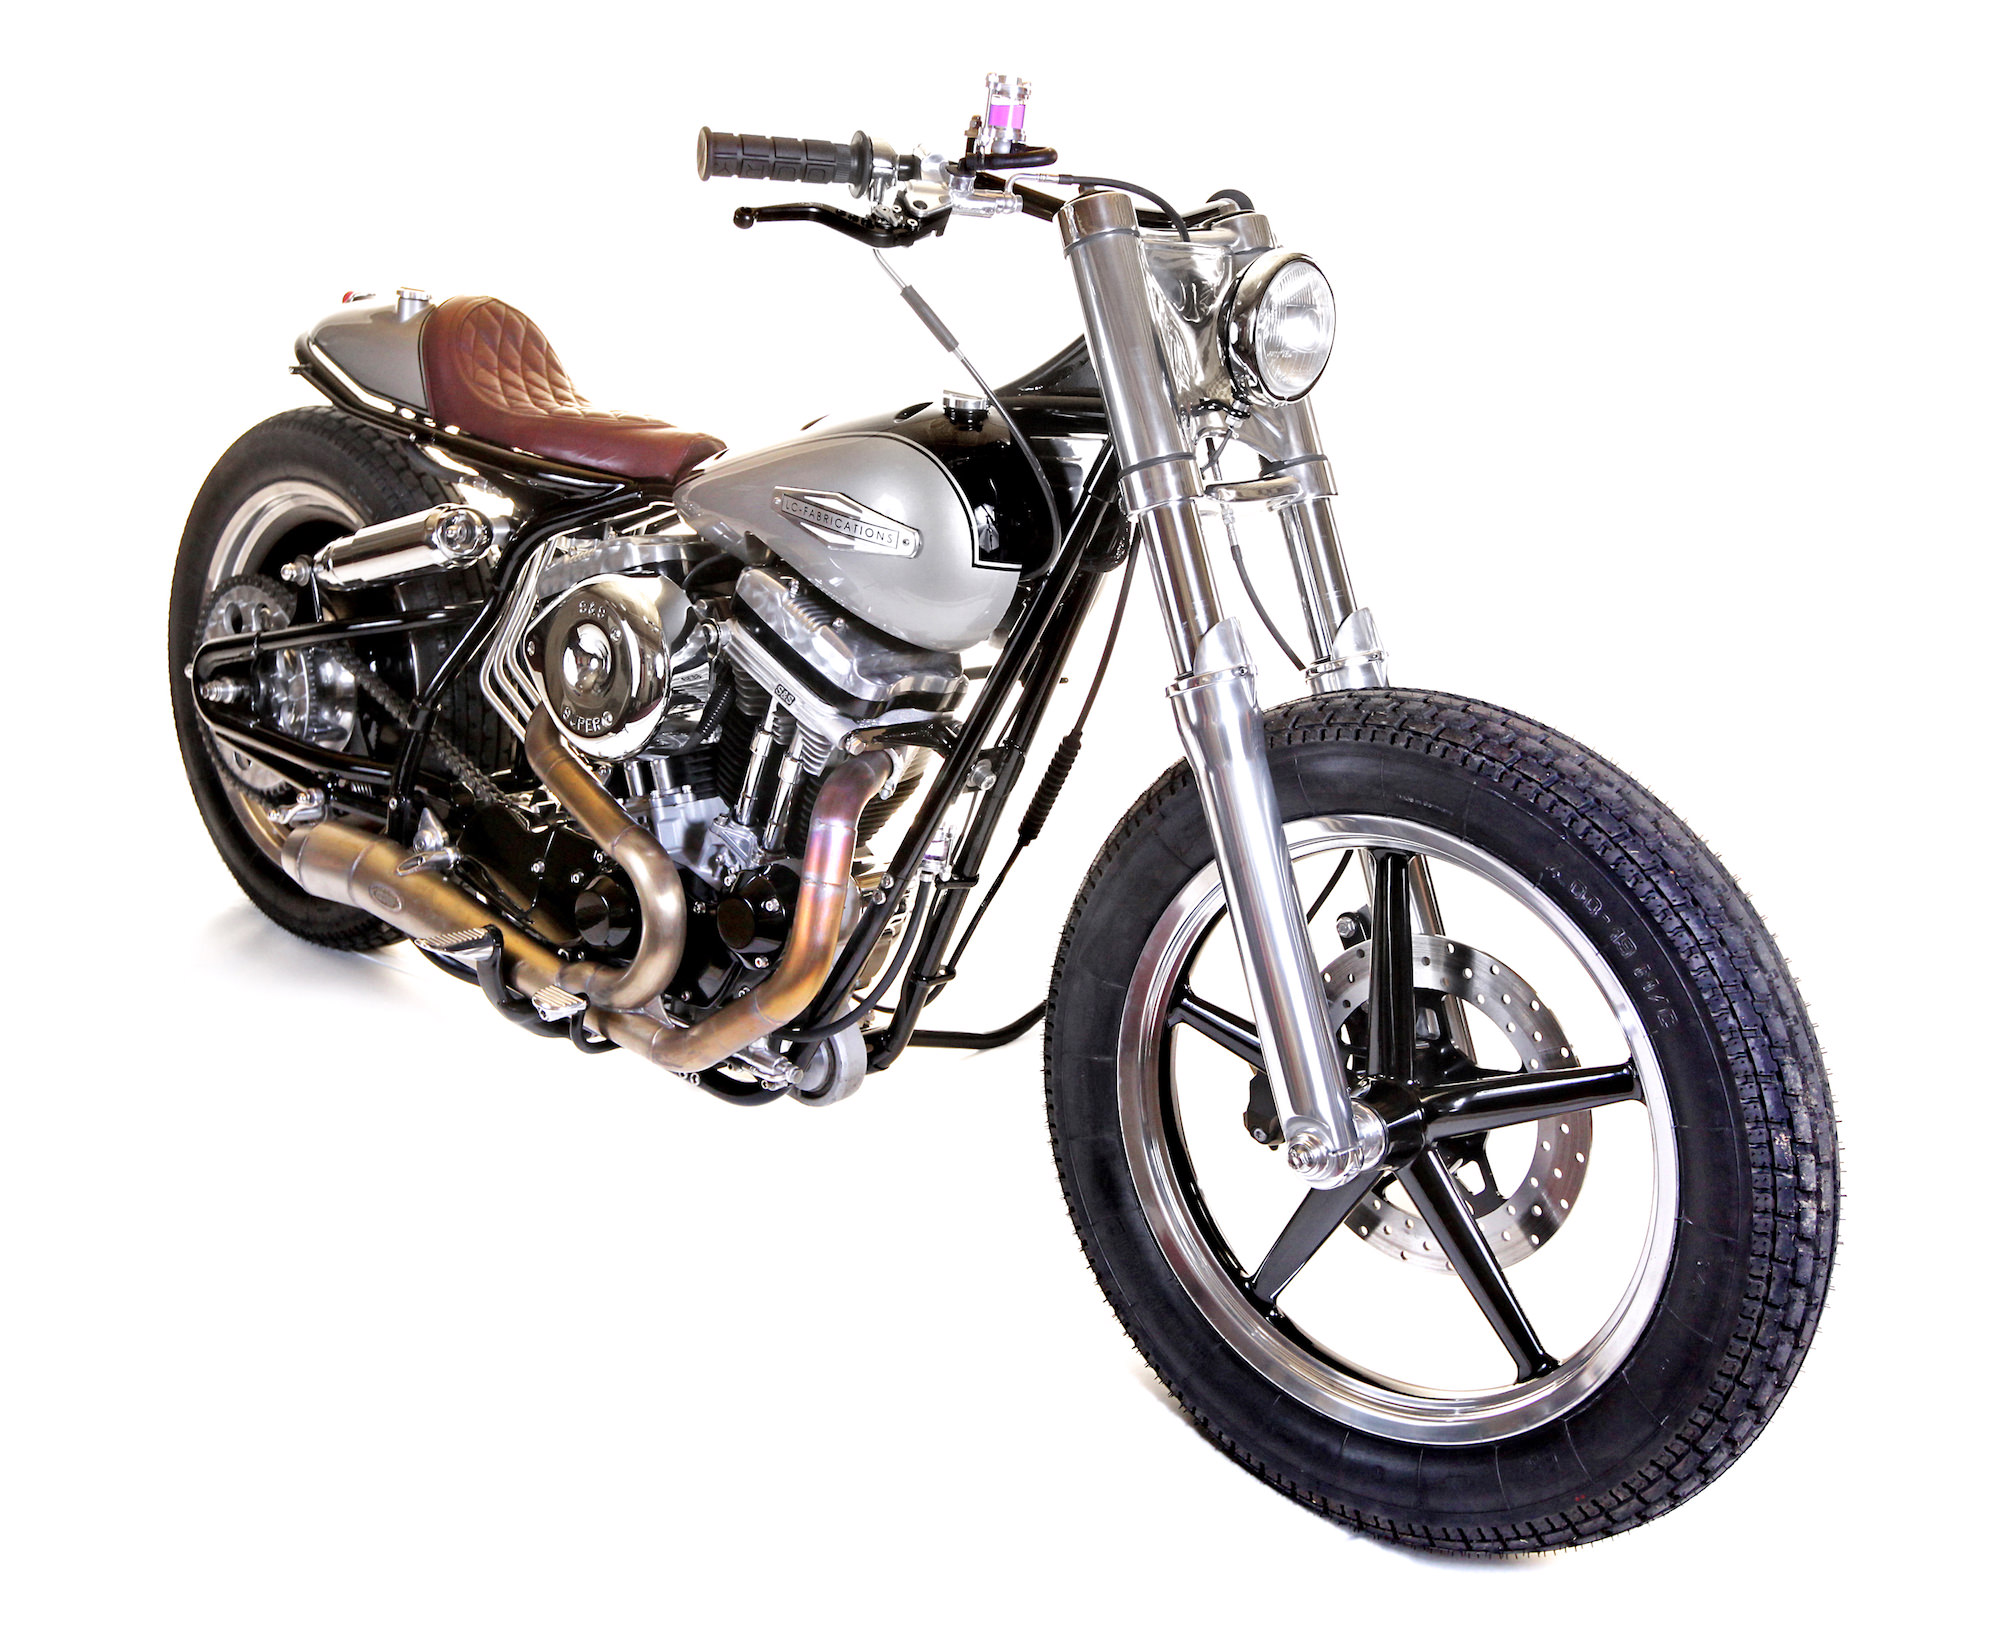 LC Fabrications Harley-Davidson Sportster